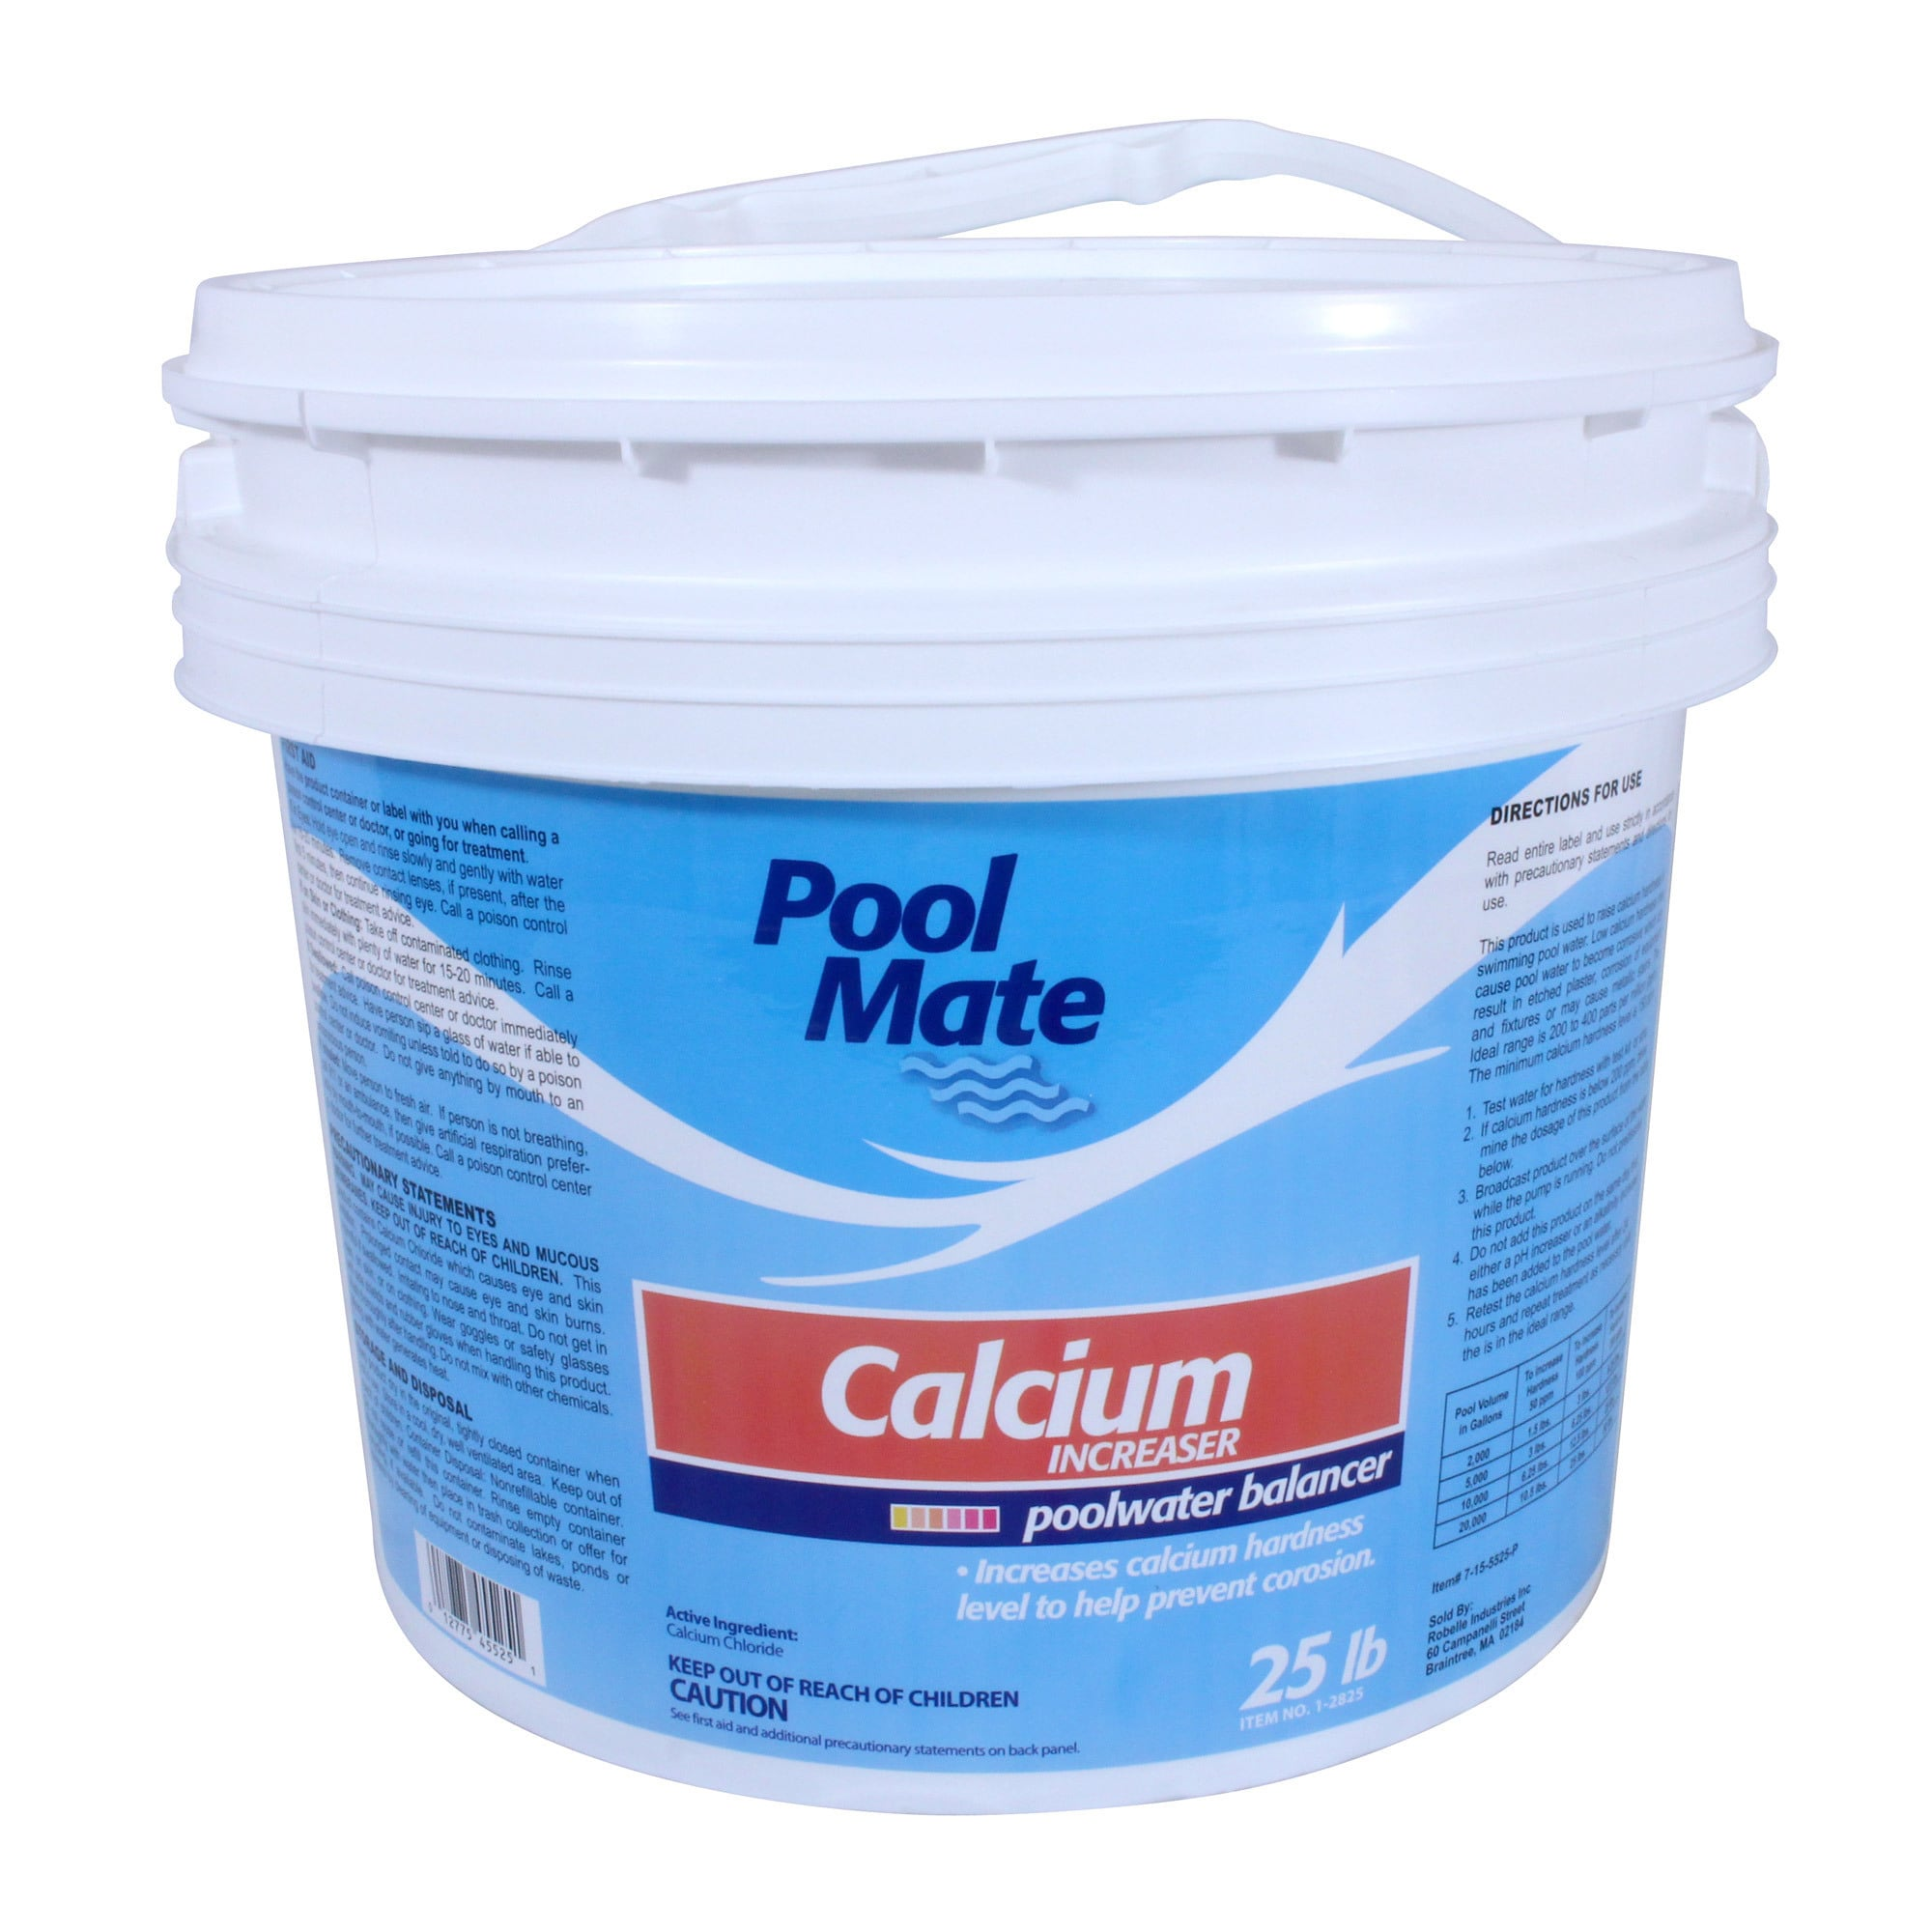 Pool (Blue) Mate Calcium Increaser 25 lb. (25 lb. Container)